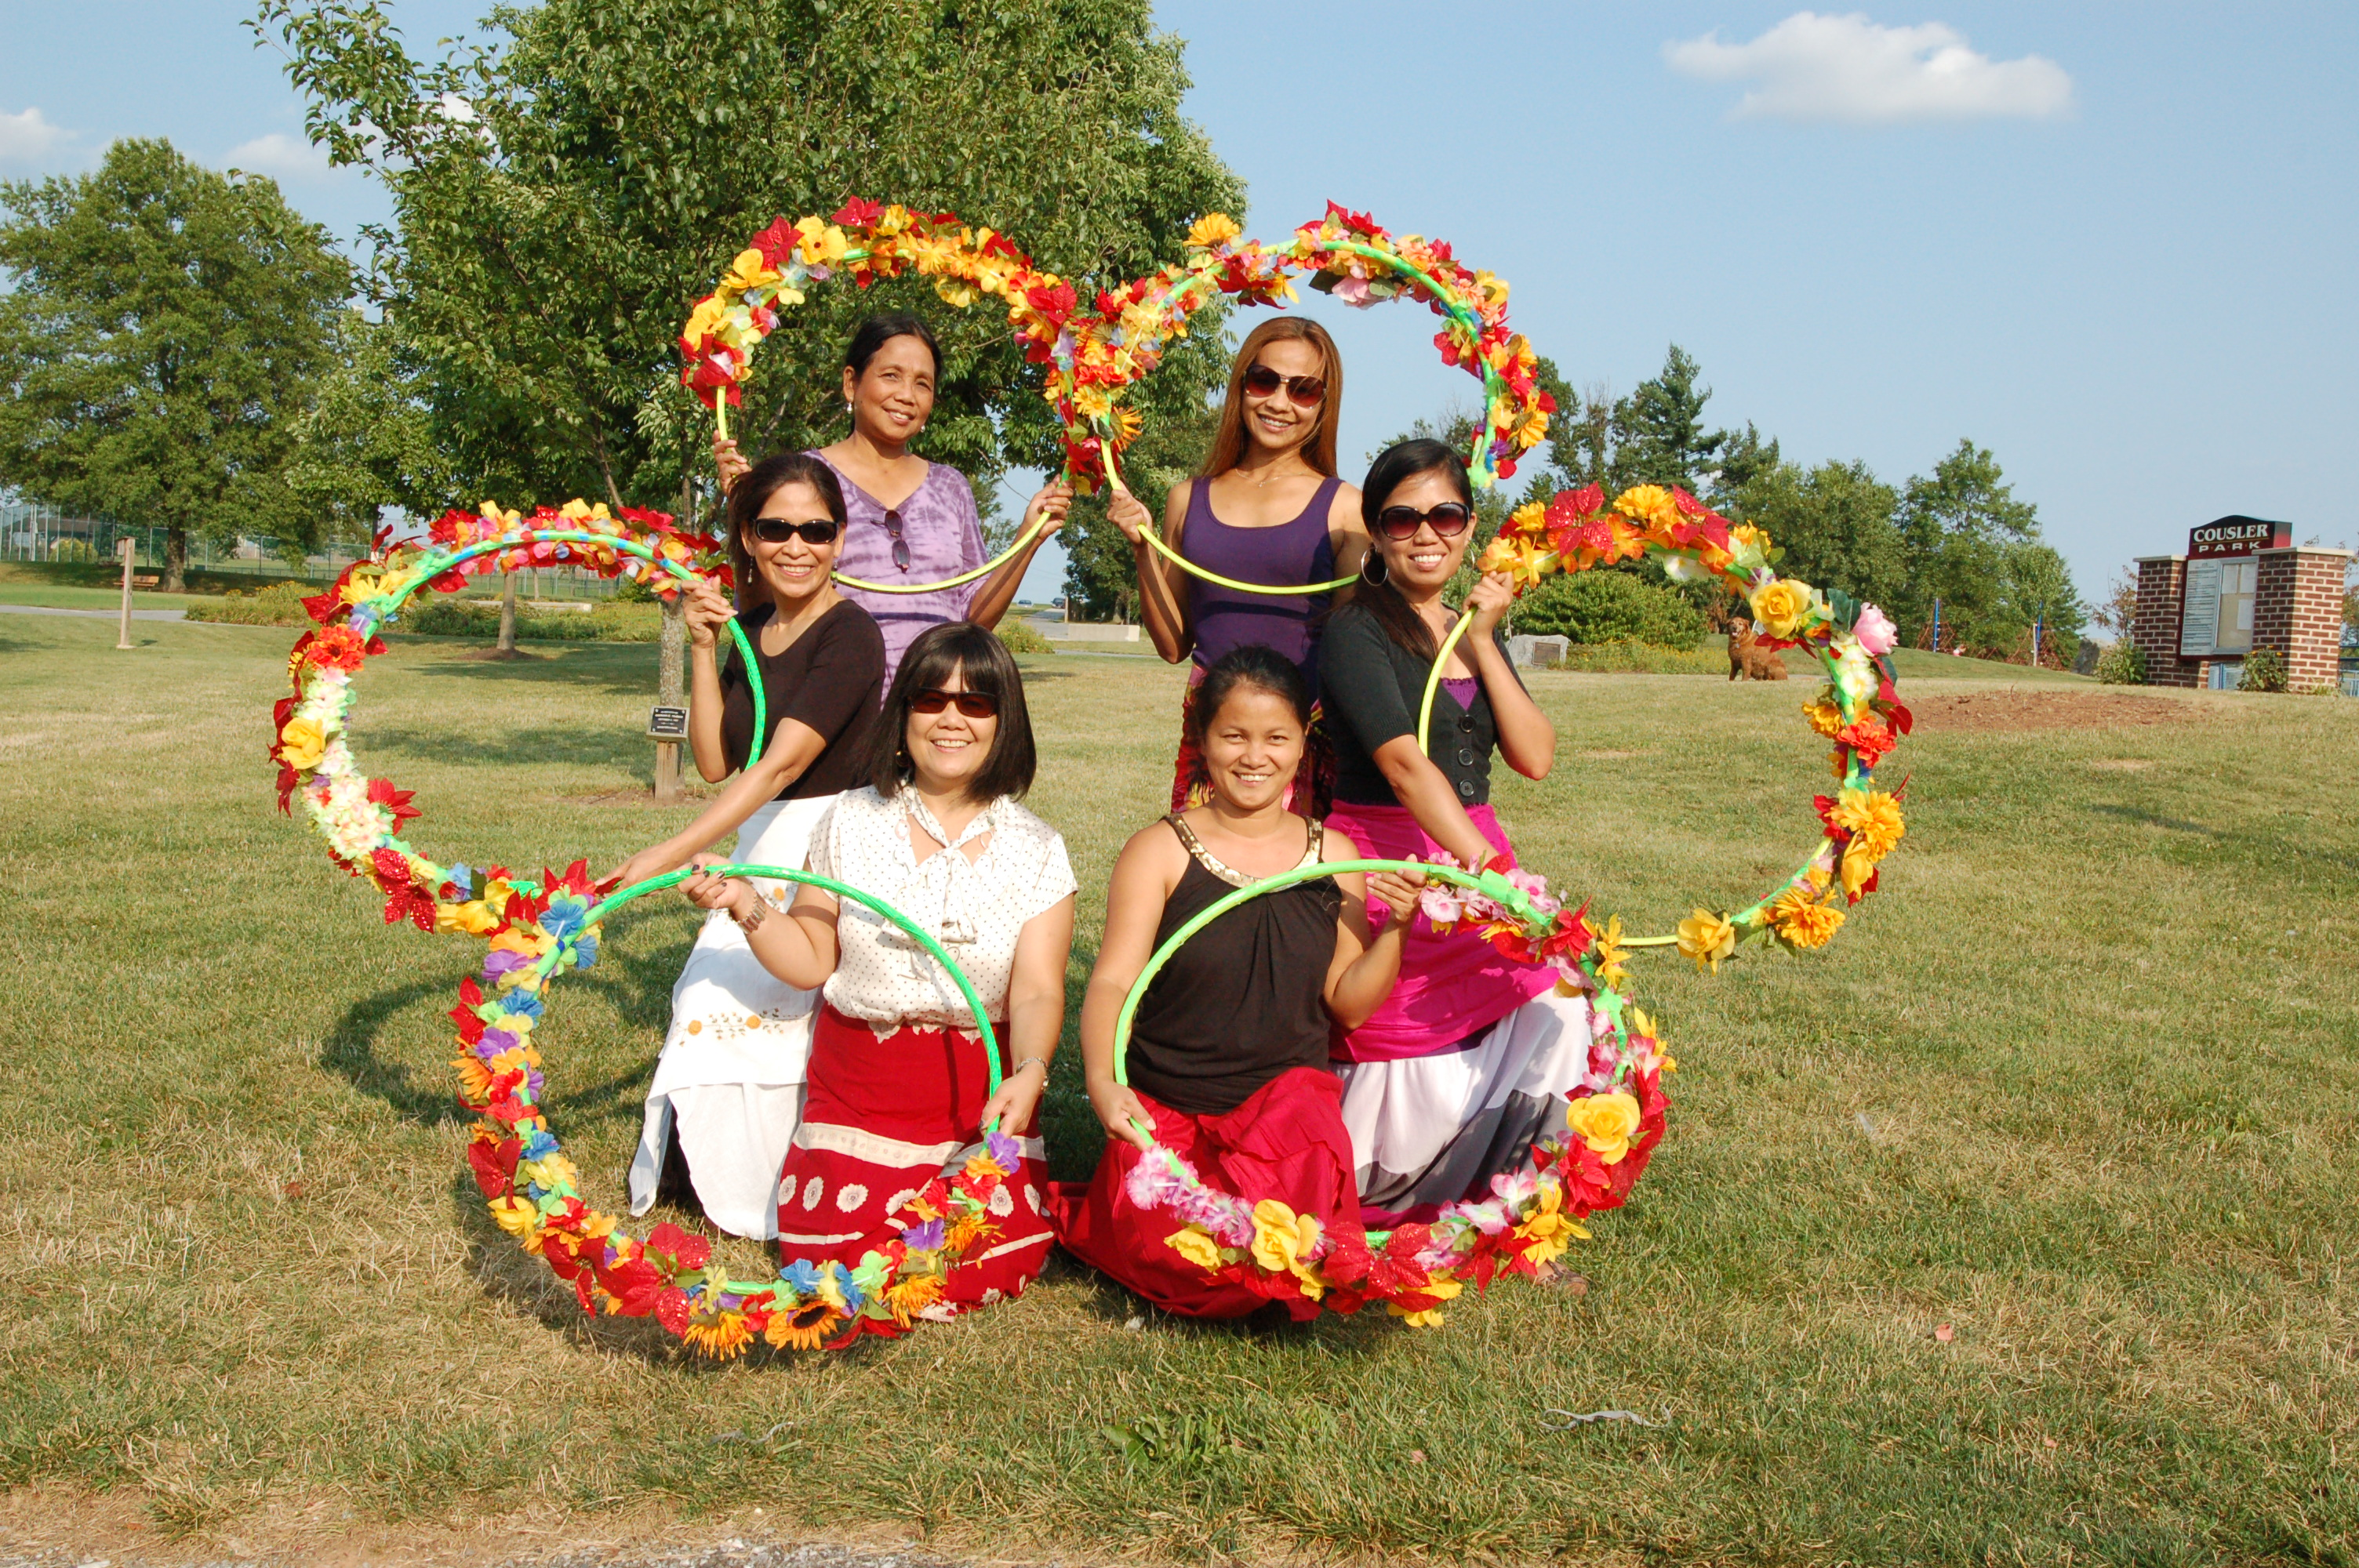 "The Dance Troop of the Philippine American Heritage Council at a practice session in an area park, preparing for their debut performance at the 3rd annual picnic on Aug. 3.  Clockwise, starting lower left corner: Priscilla Bachman, Emy Delgaudio, Milagros Thomas, Mary Anne Nielsen, Emee Hemme, Jhoann McCarthy.  Their next and last practice will be ""full dress rehearsal"" with their new costumes."